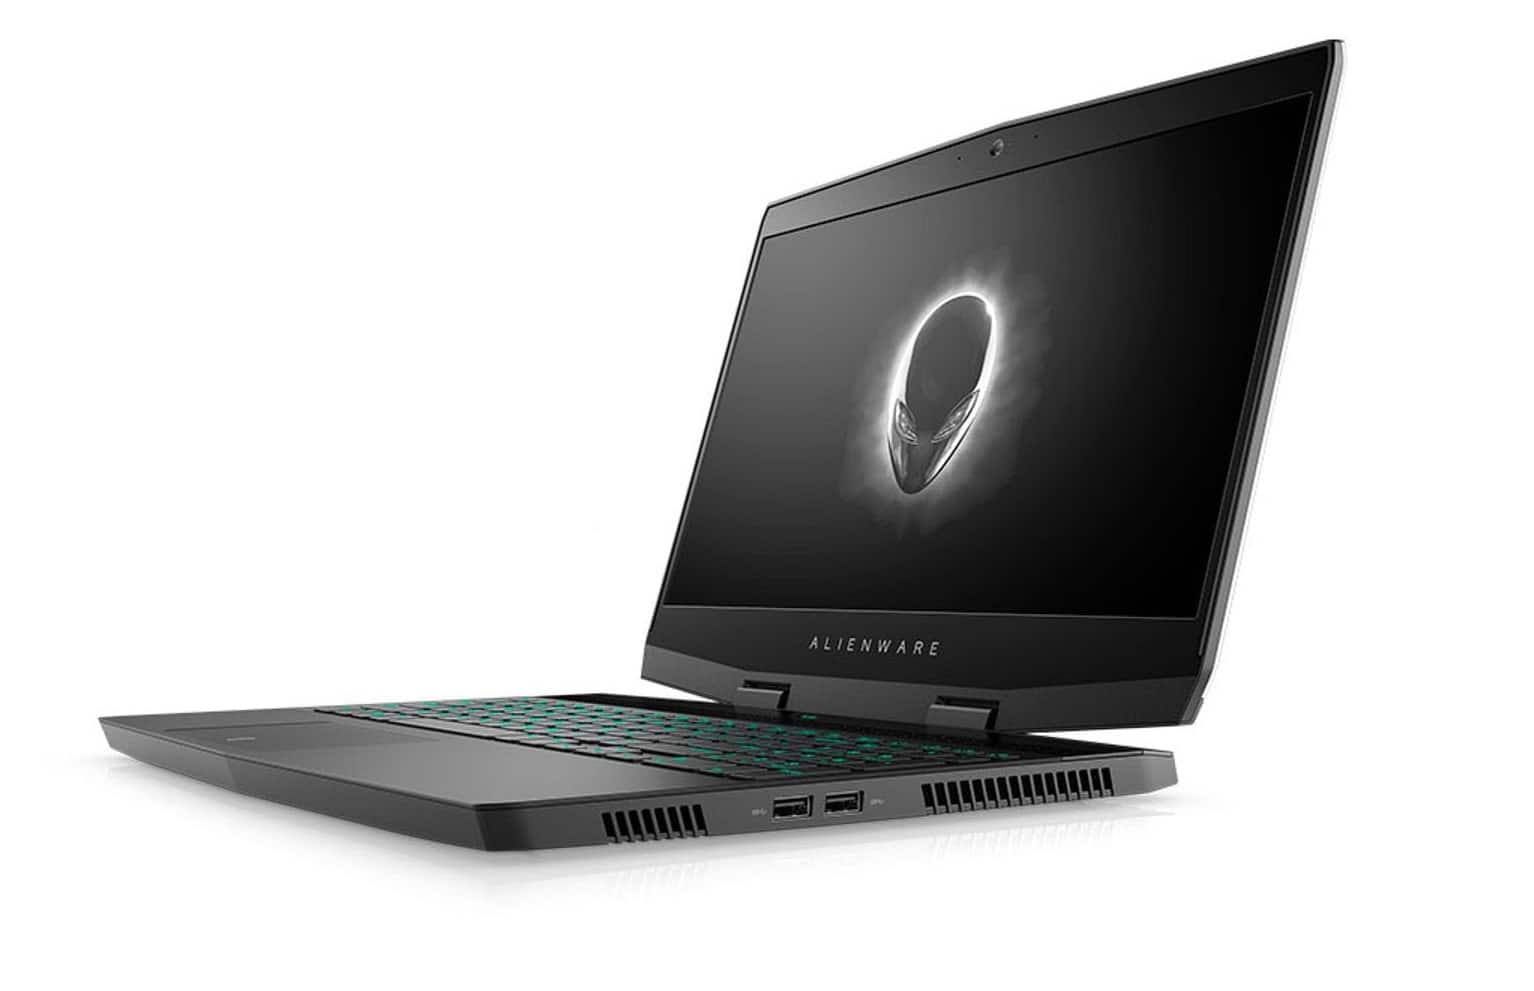 Alienware m15 Laptop: FHD 144Hz IPS, i7-8750H, 16GB DDR4, 512GB SSD, GTX 1060 6GB - $999.99 after $200 Slickdeals Rebate